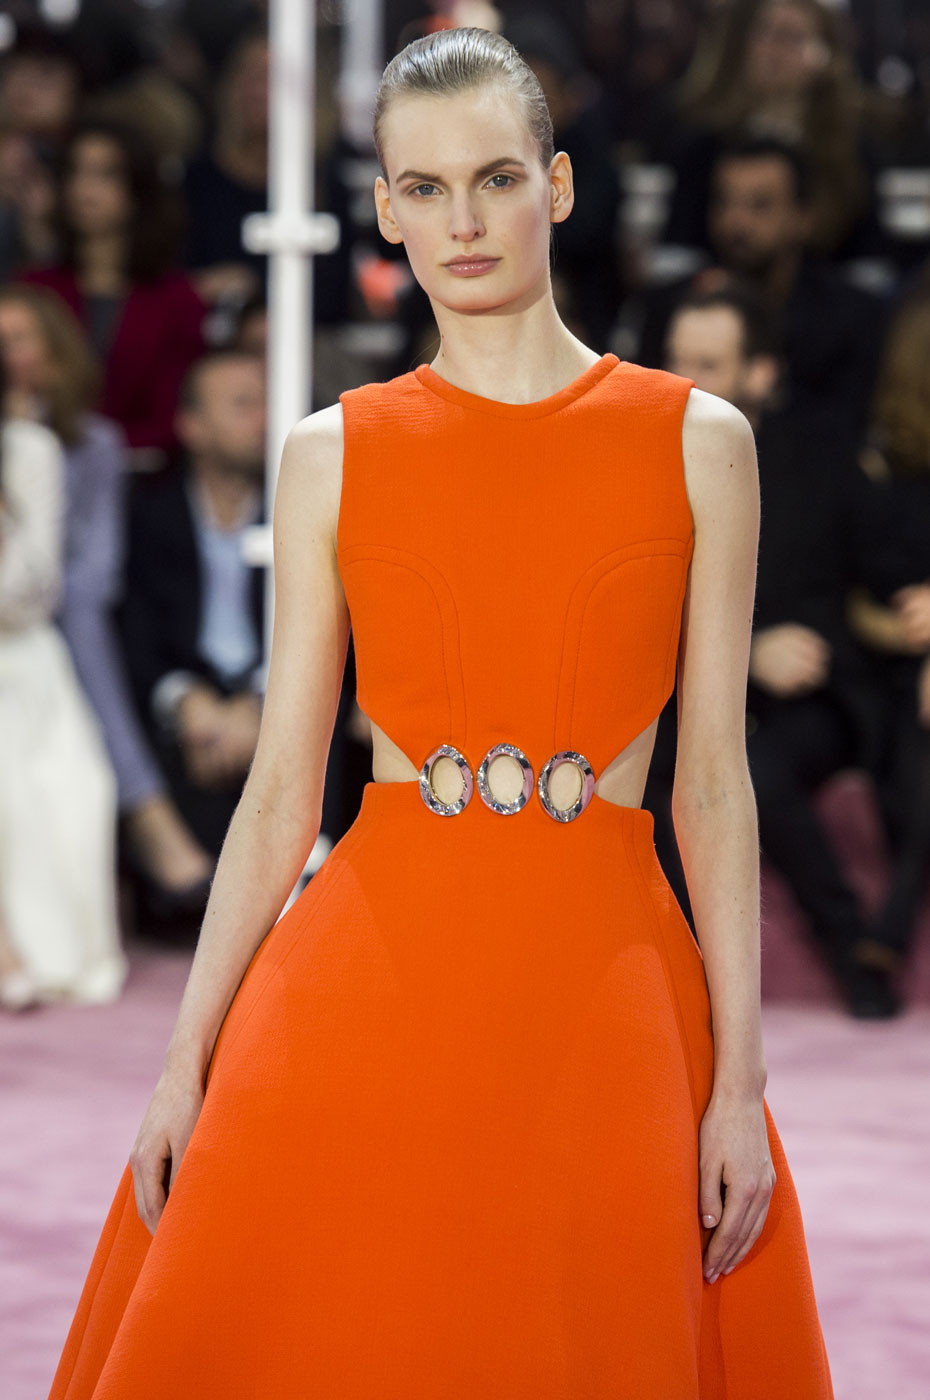 Christian-Dior-fashion-runway-show-haute-couture-paris-spring-summer-2015-the-impression-091